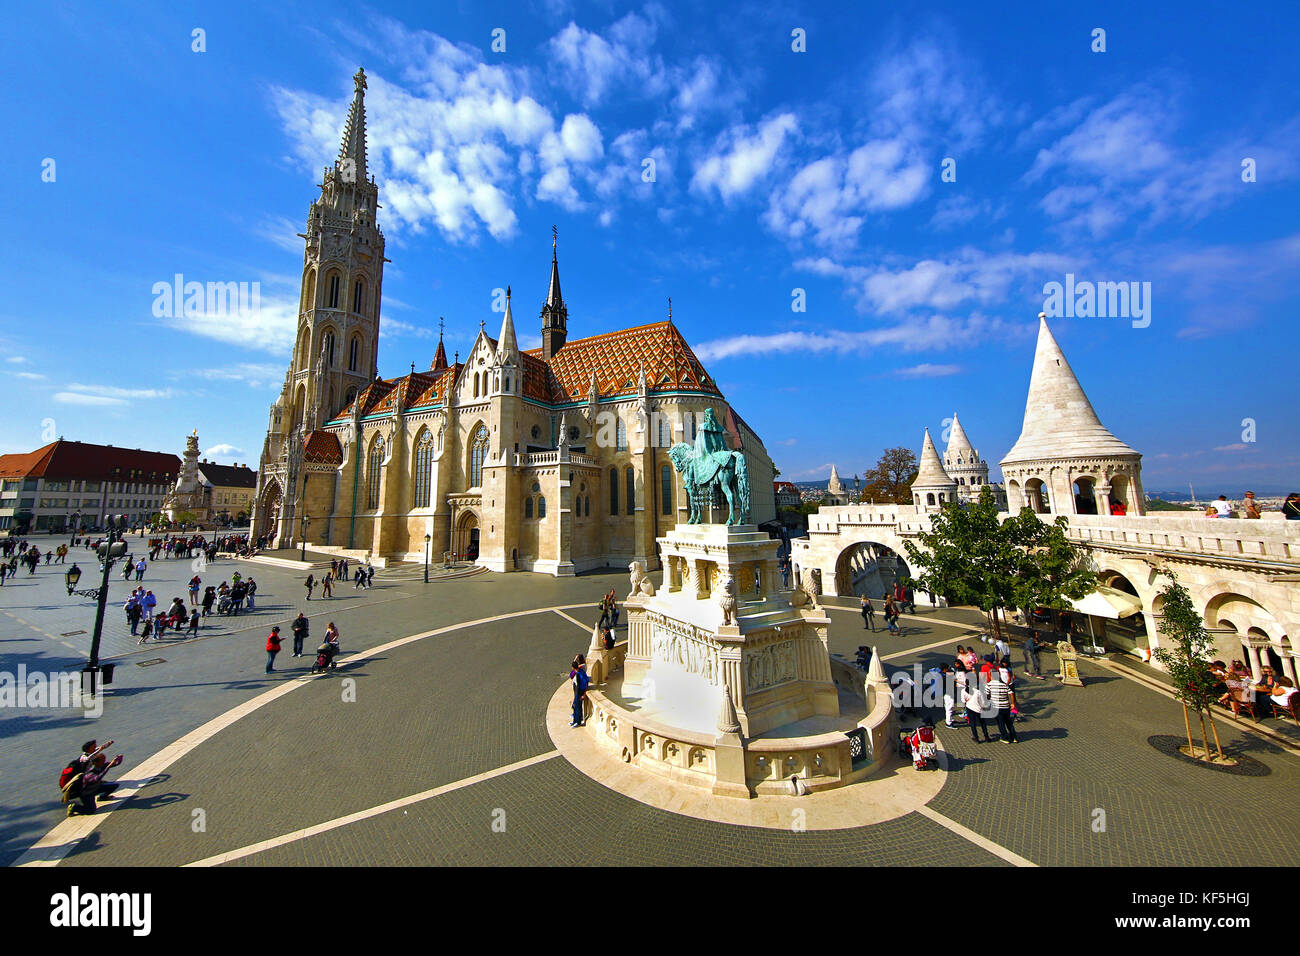 The Fisherman's Bastion and the Matthias Church in Budapest, Hungary - Stock Image